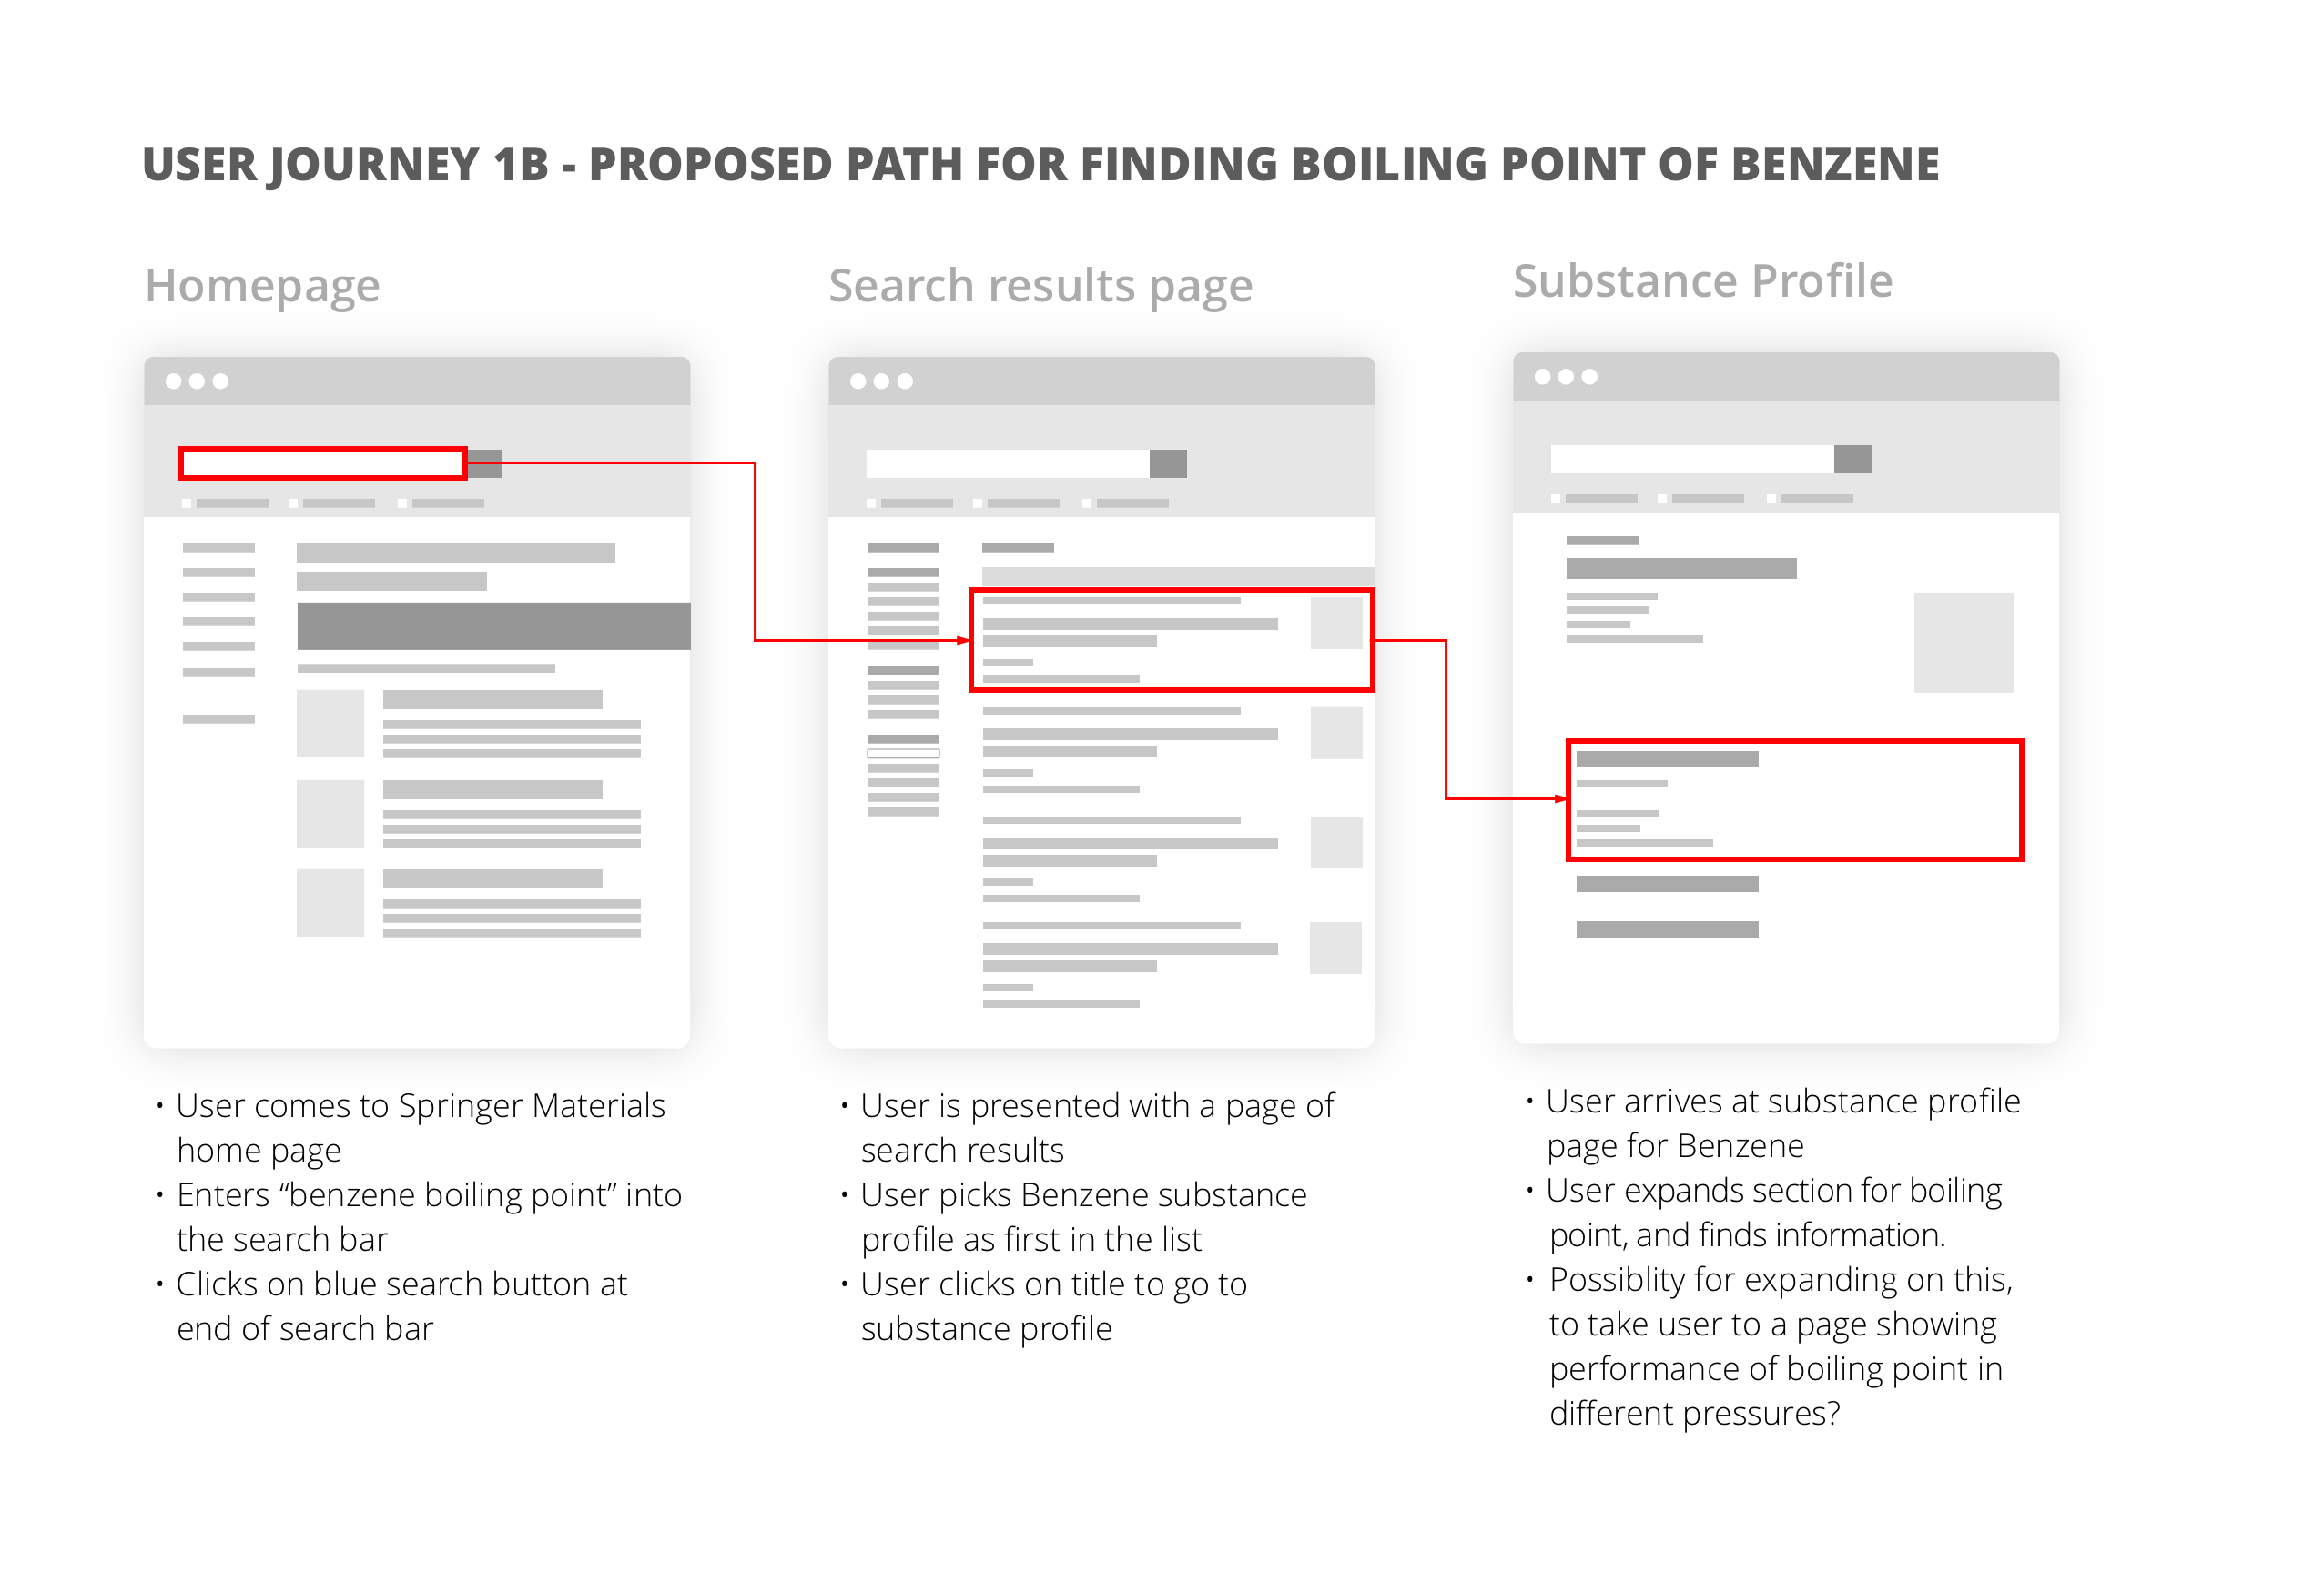 Proposed user journey to improve finding the boiling point of benzene